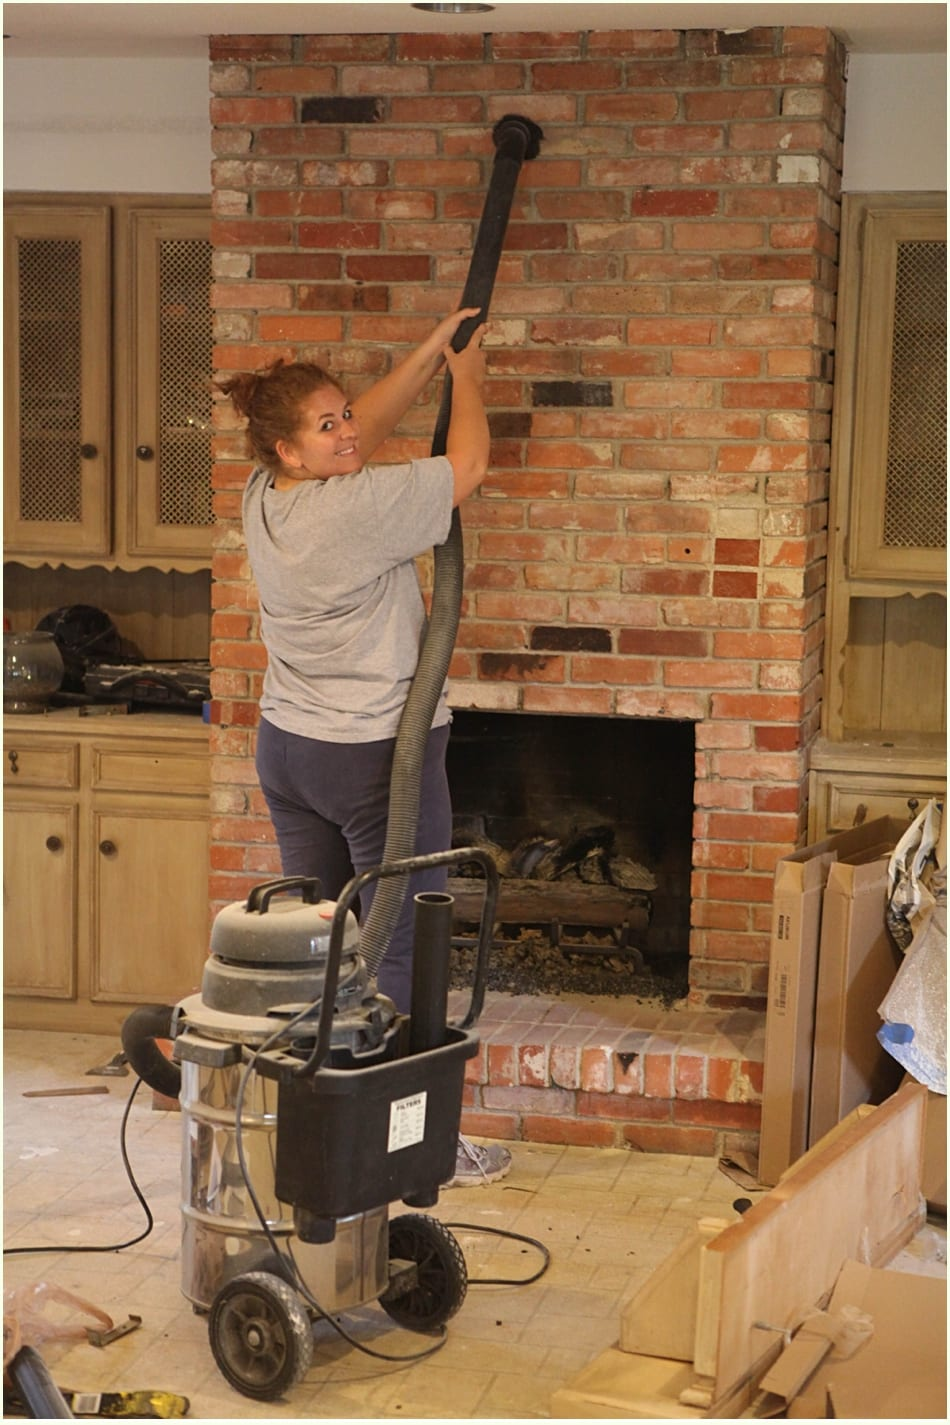 Using a vacuum to clean a fireplace before a whitewash brick project.